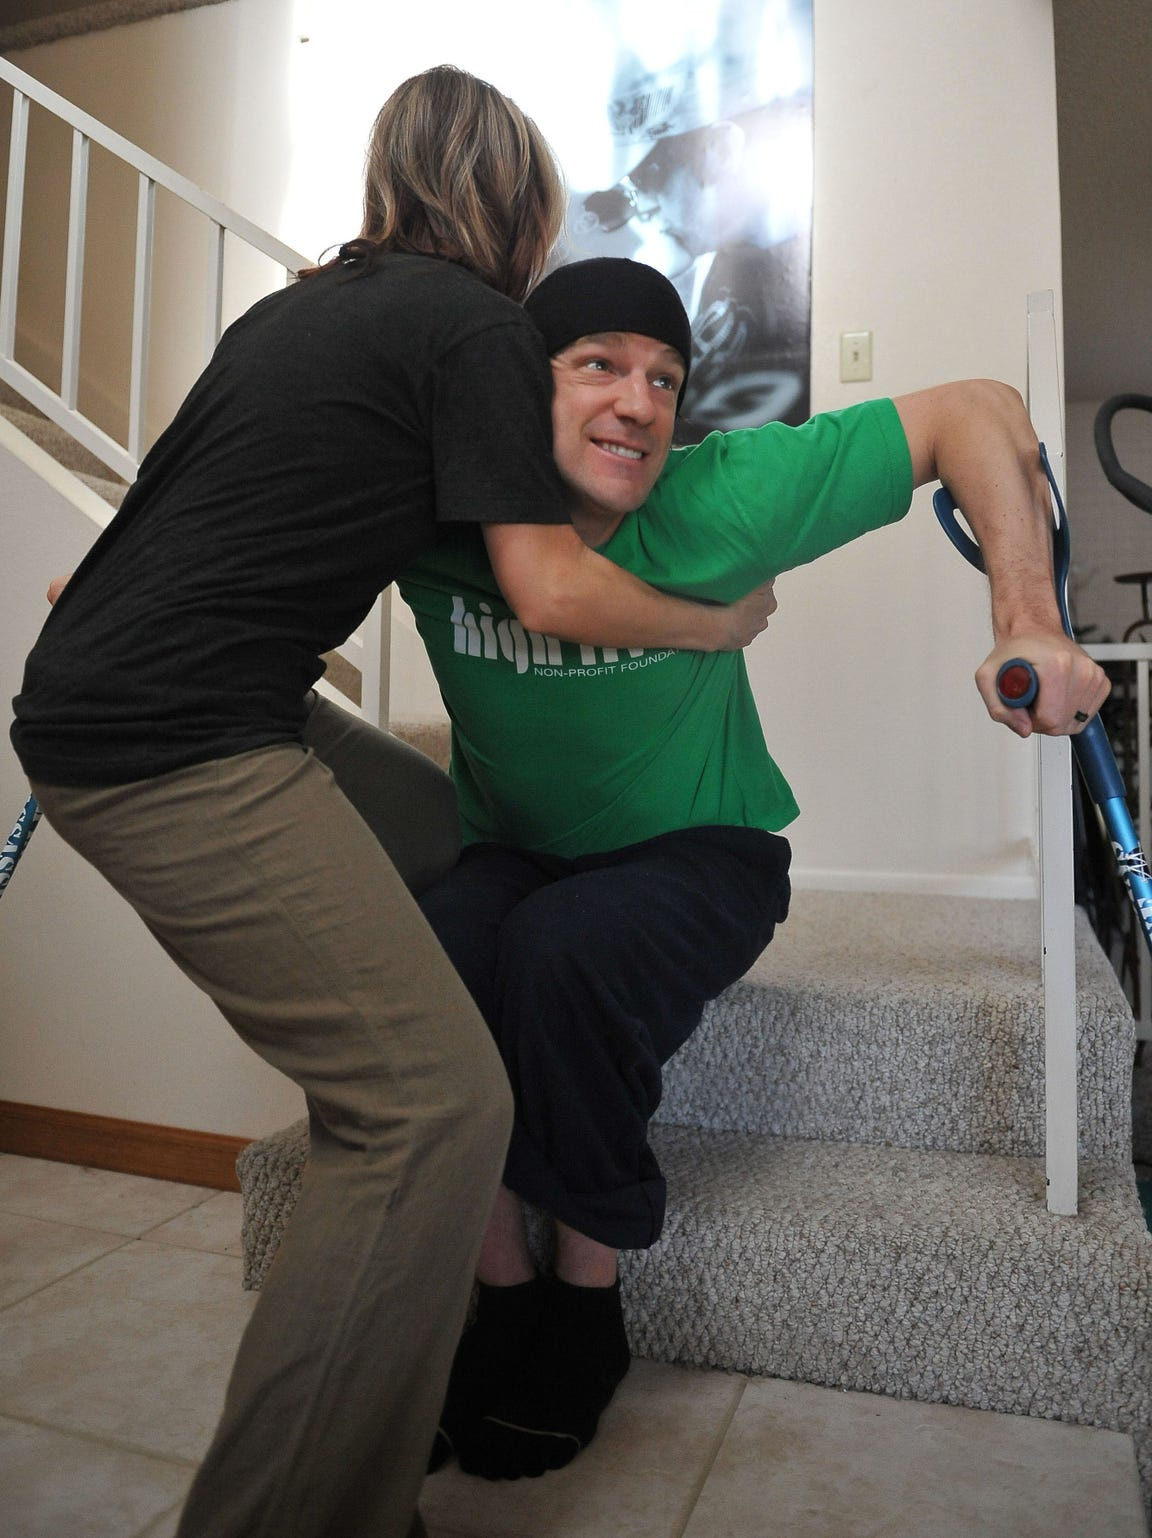 Shawna Korgan helps her husband Grant up from sitting on the steps at their home in 2011.